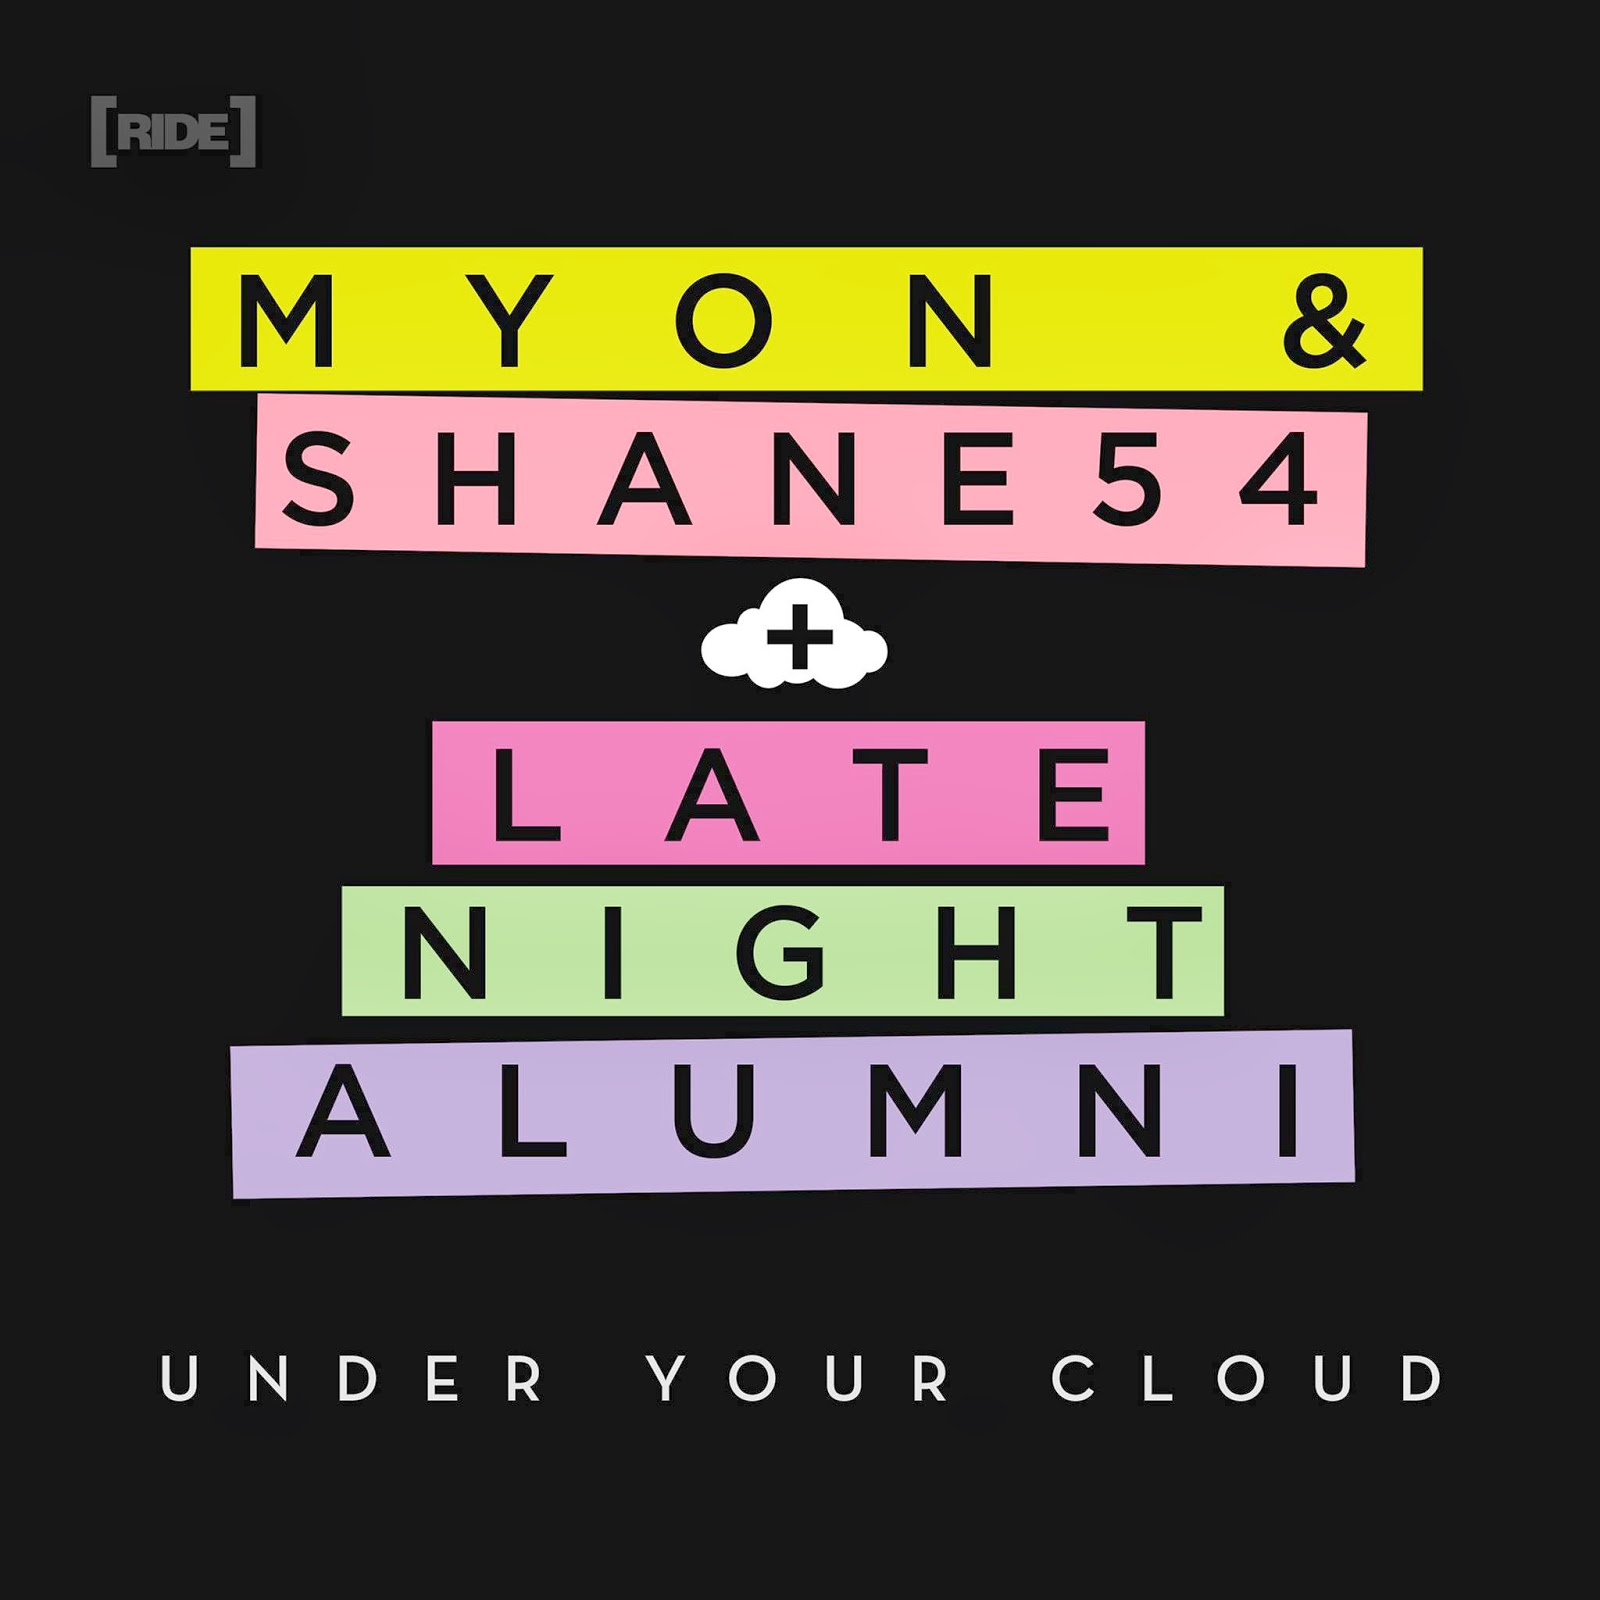 Myon and shane 54 under your cloud